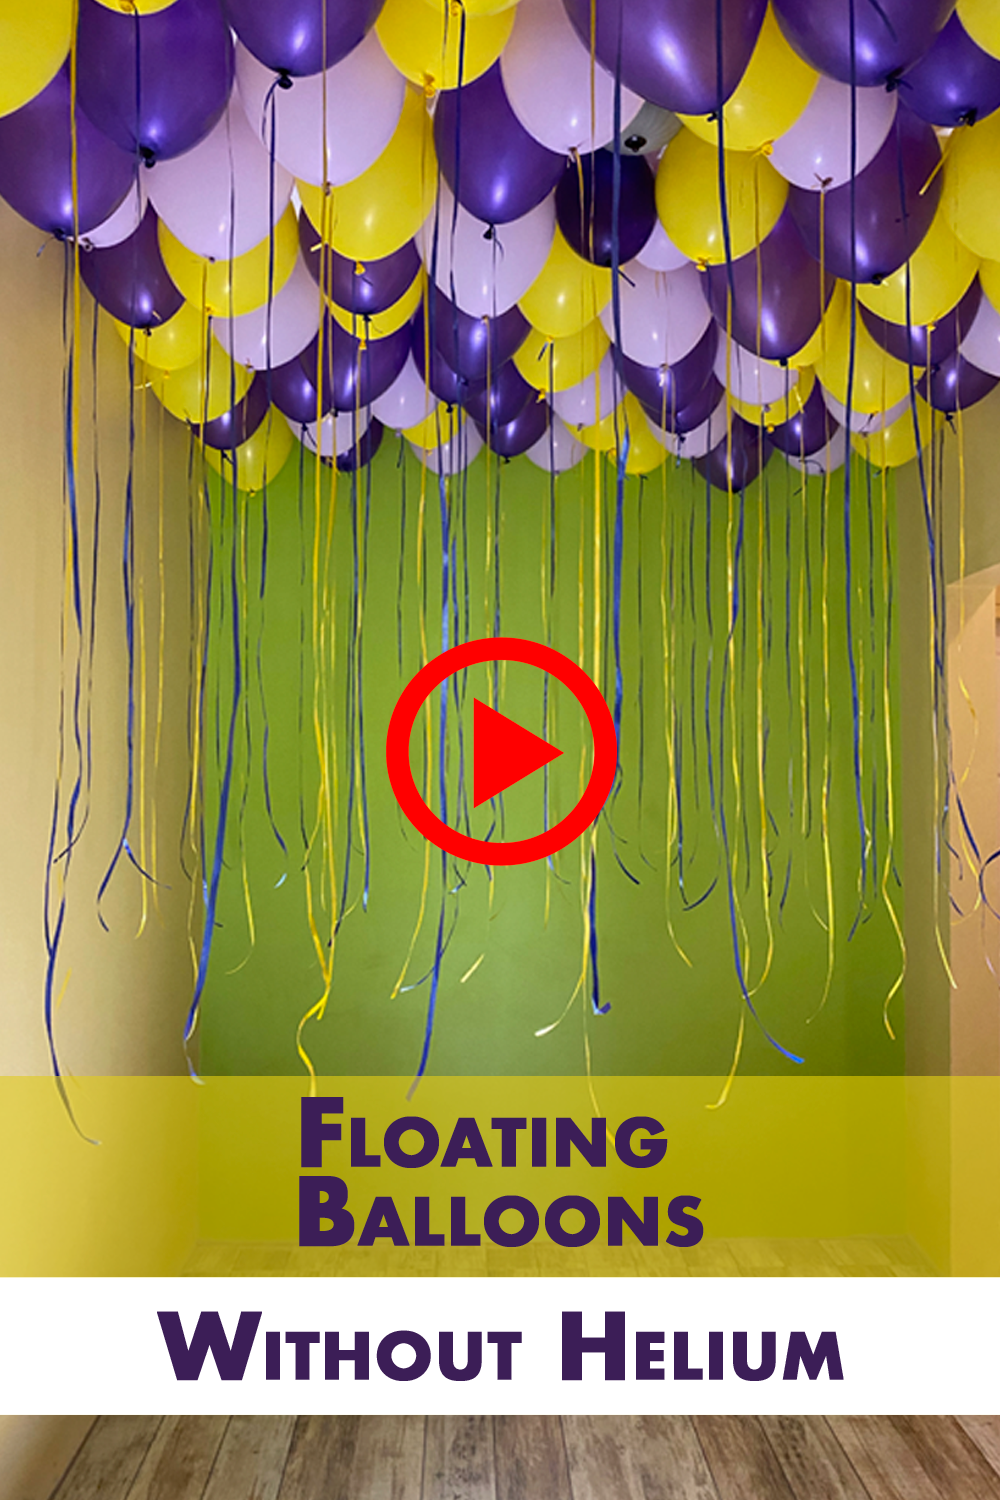 Video Floating Balloon Without Helium Ceiling Decoration Idea Diy How To In 2020 Floating Balloons Hanging Balloons Balloon Ceiling Decorations